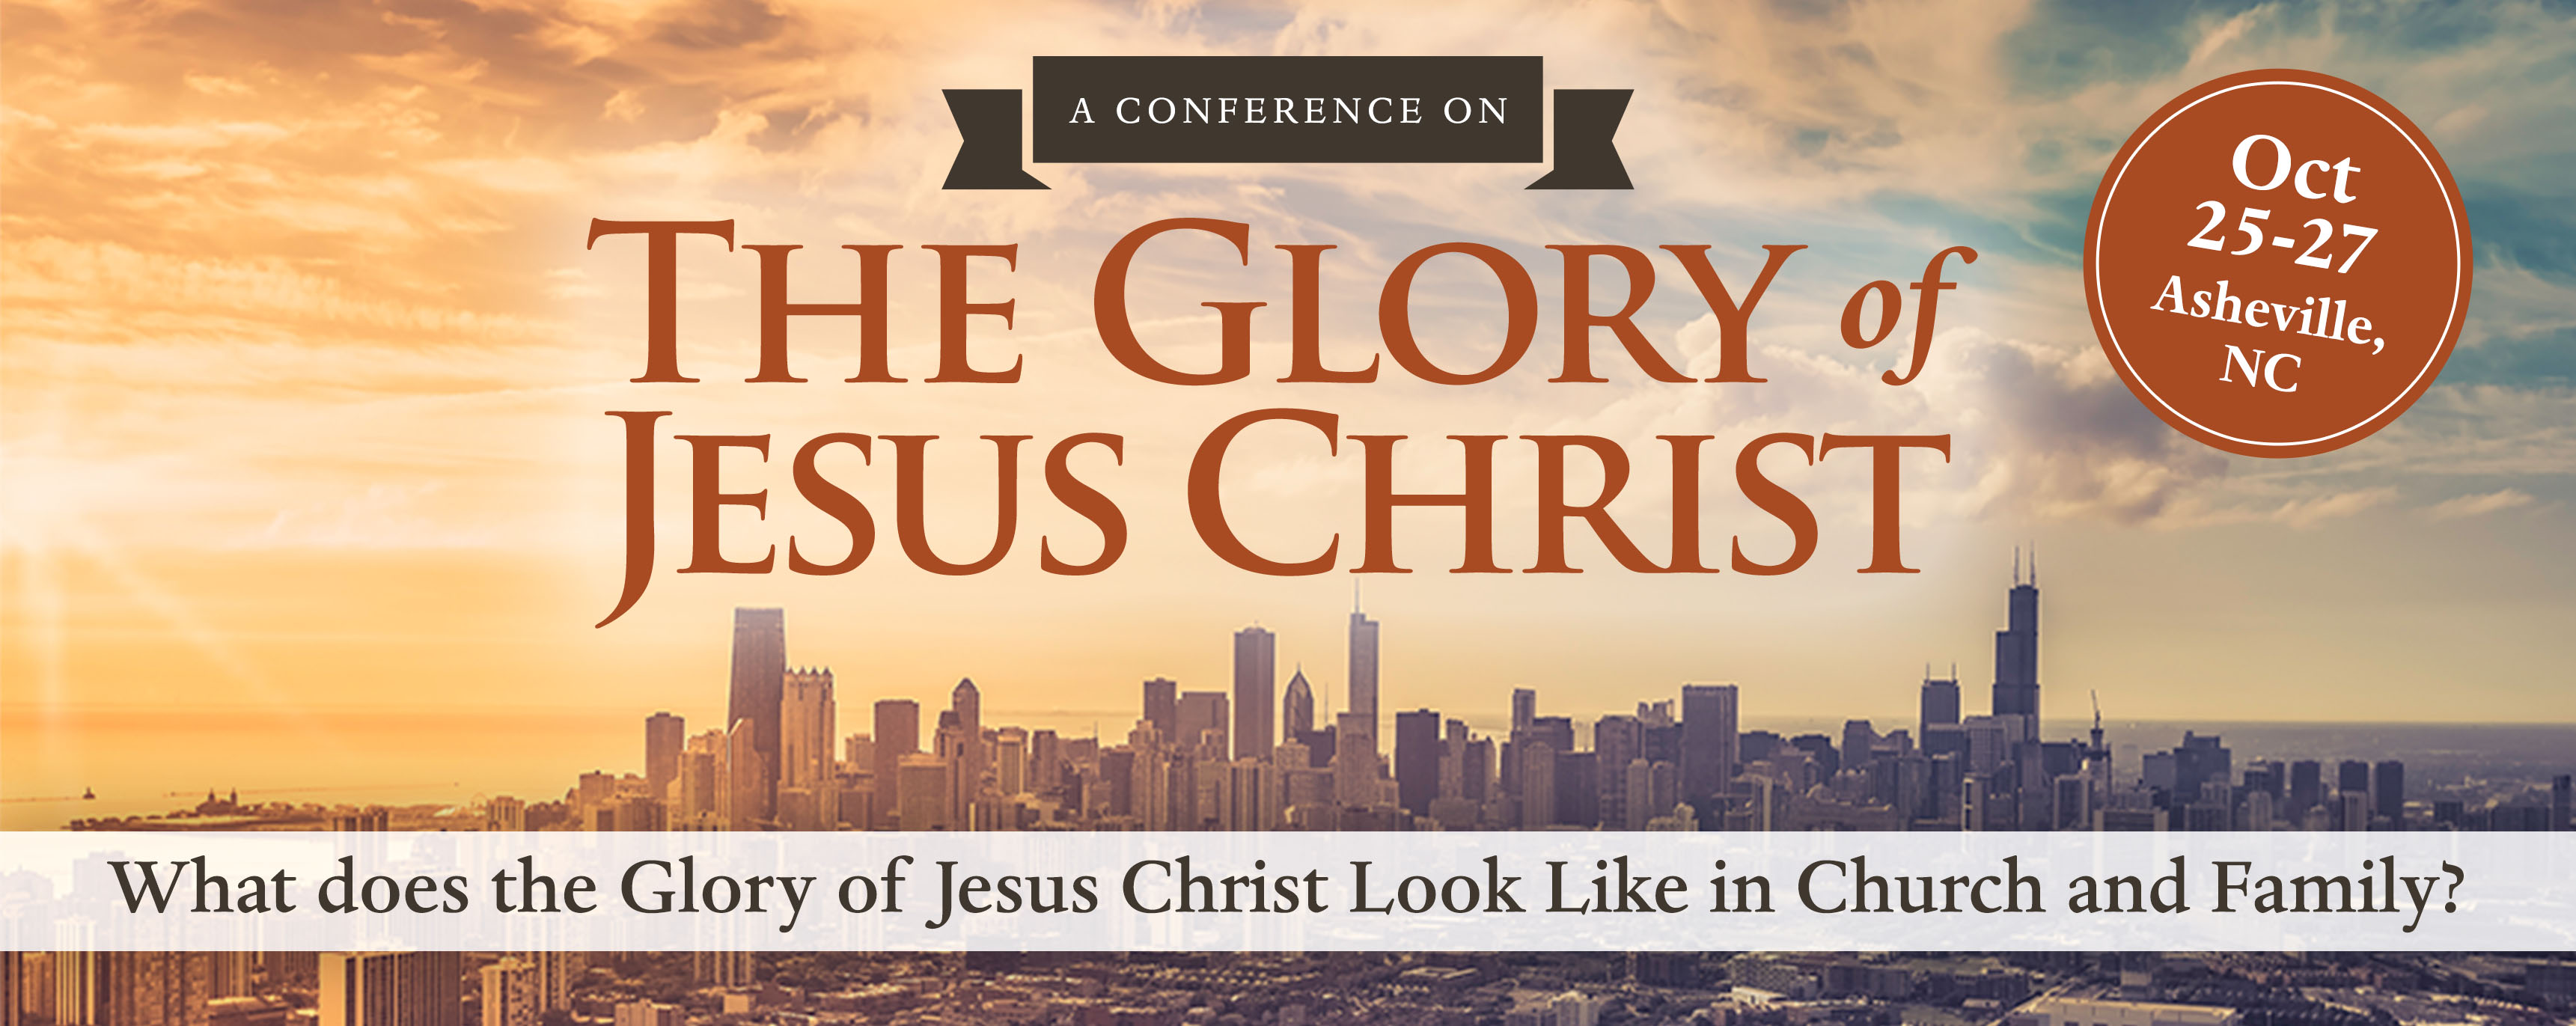 The Glory of Jesus Christ